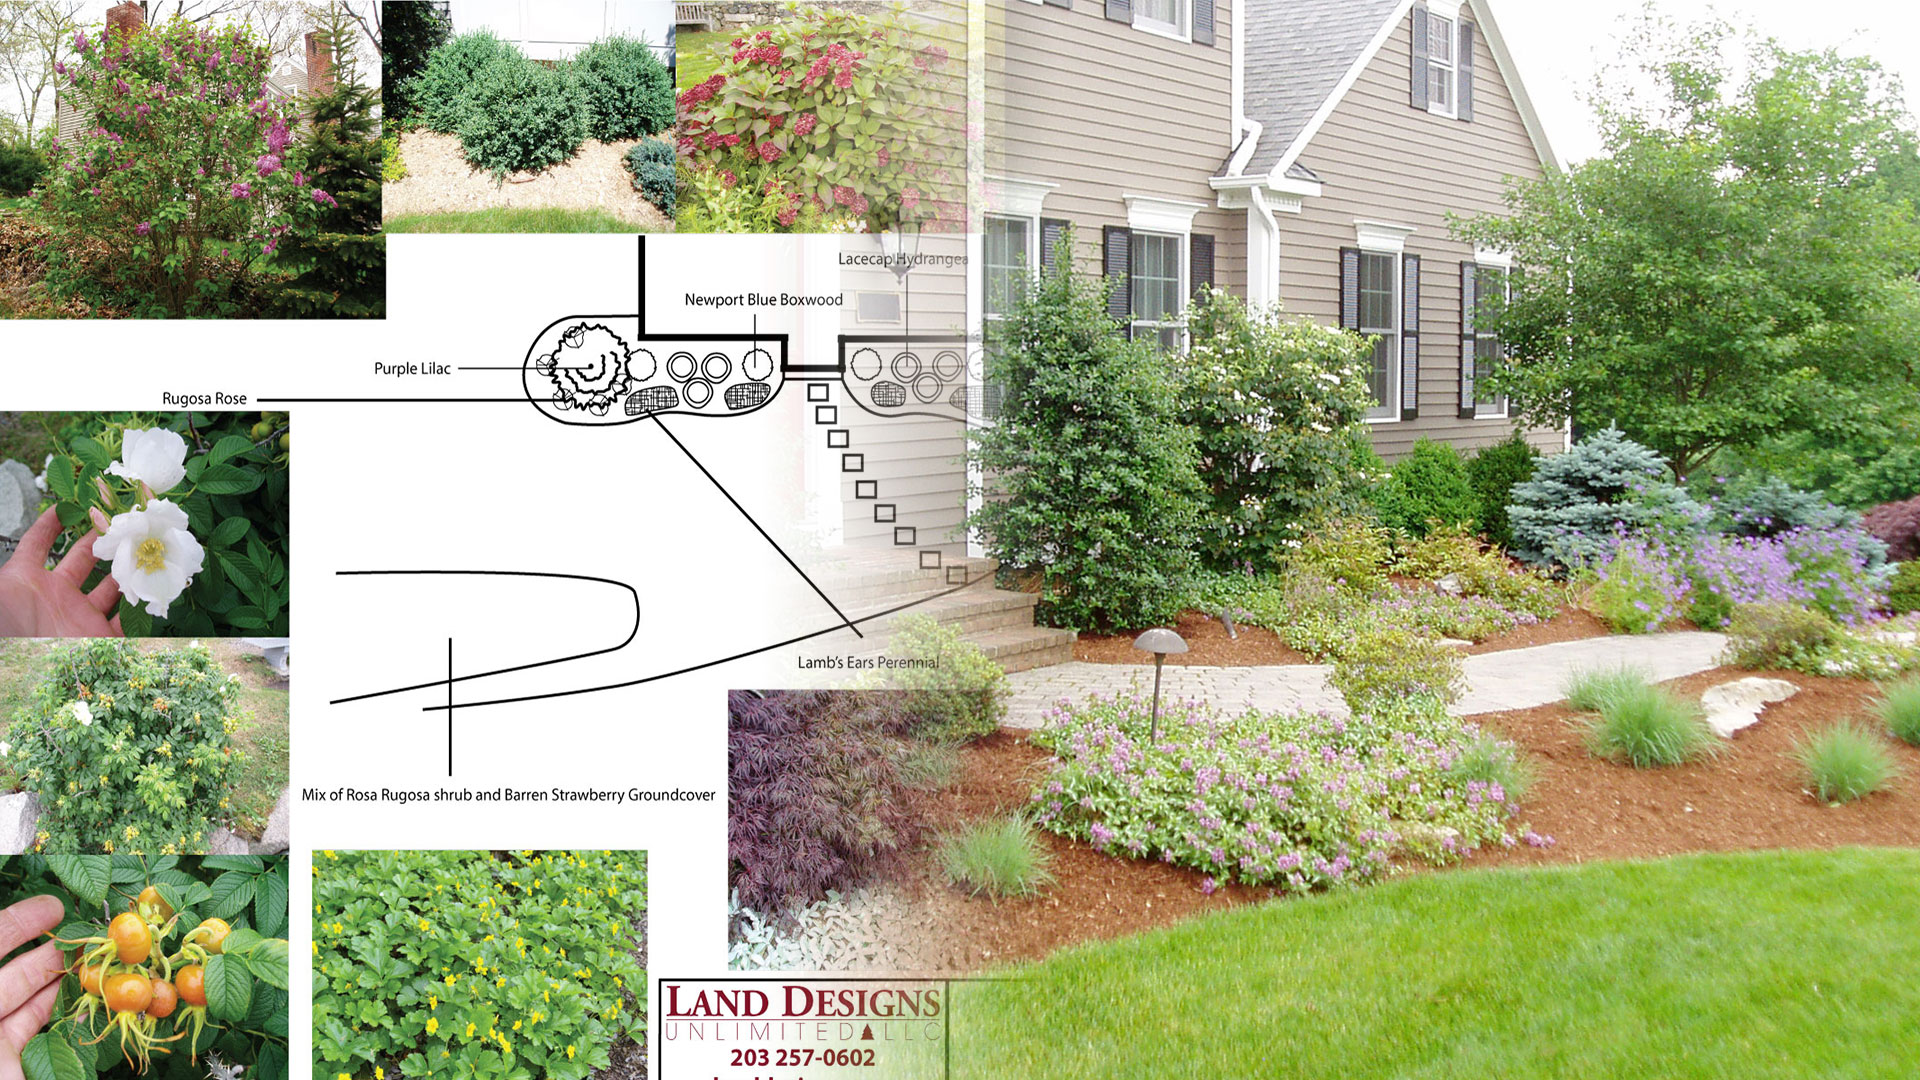 How I Got My Groove The Stages of a Landscape Design